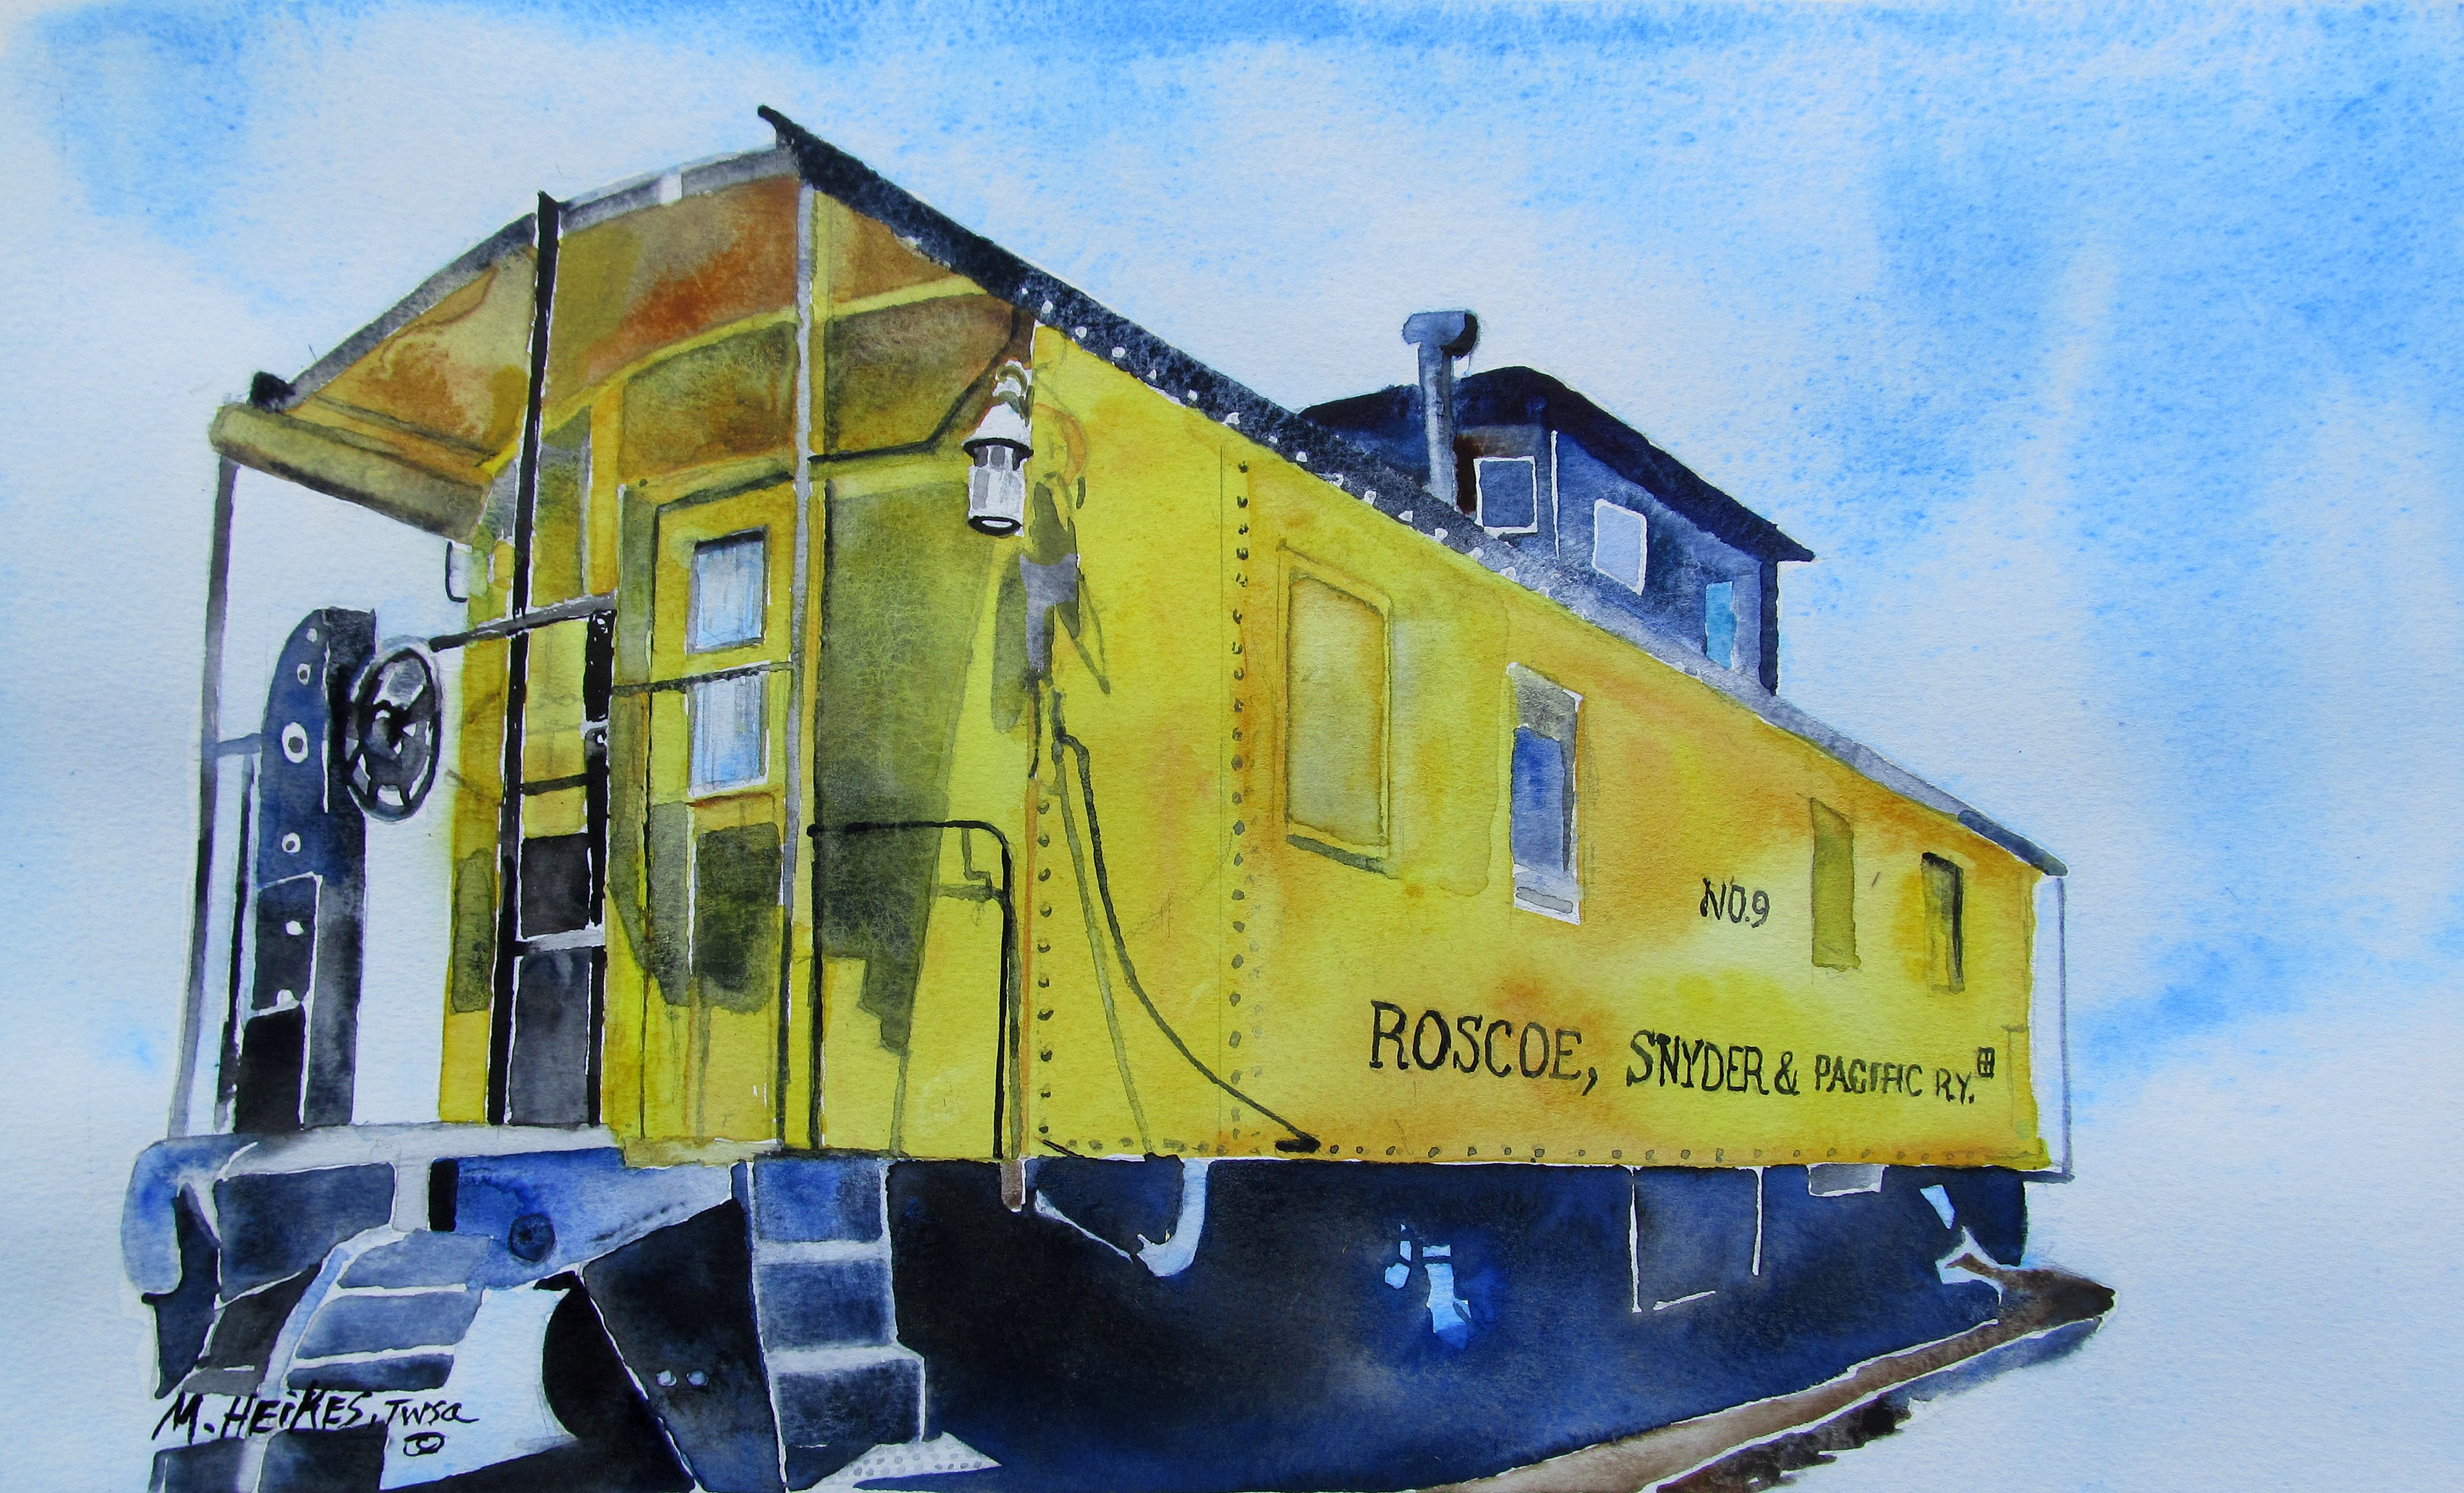 Roscoe, Snyder & Pacific Caboose #9